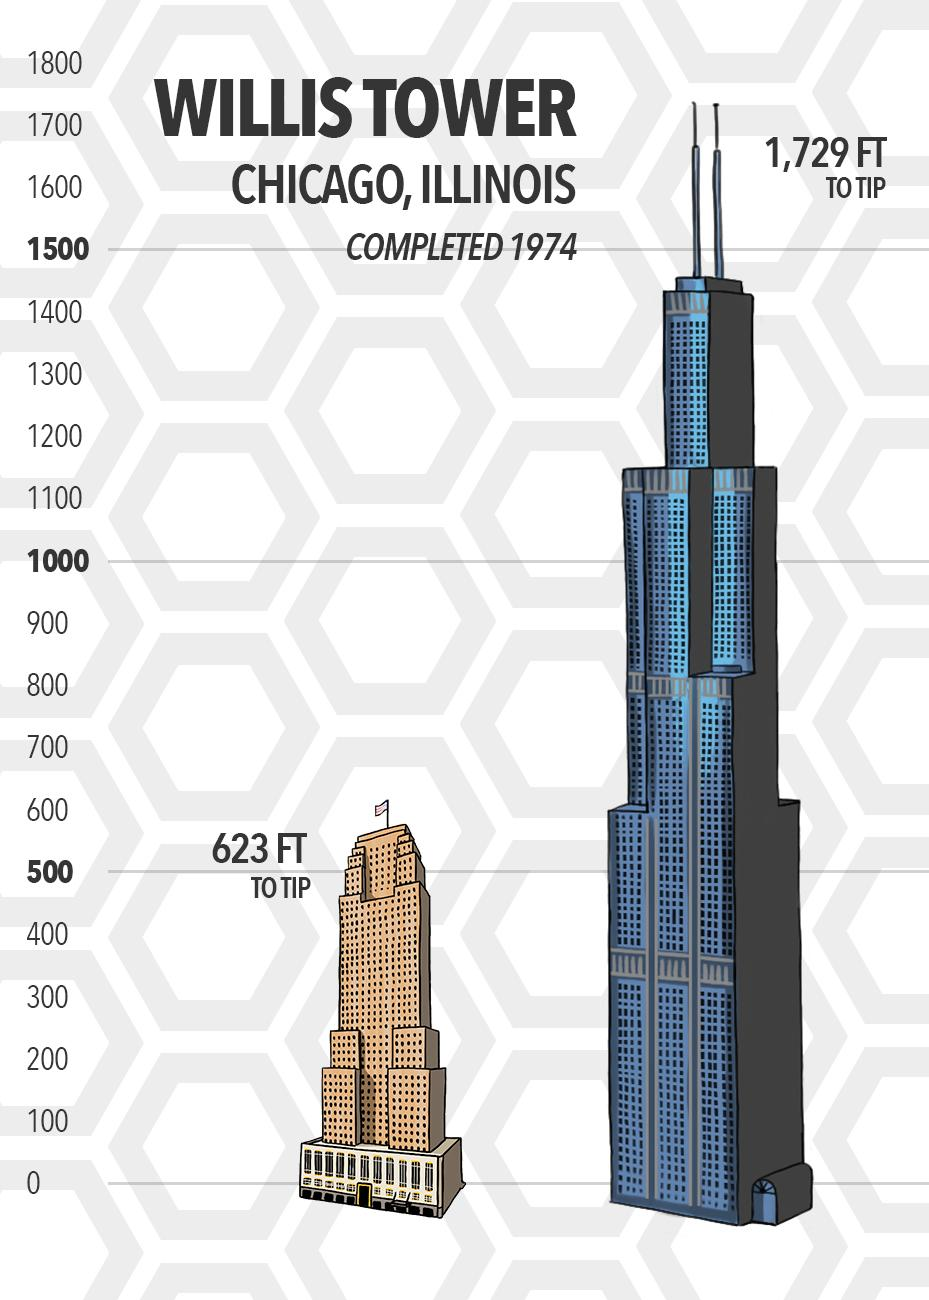 44 years after Carew Tower was completed, Chicago's Willis Tower (formerly Sears Tower) was erected at a height of 1,729 feet to its tip. For those counting, you'd need to stand two Carew Towers and 75 percent of another one on top of each other to overtake the height of Willis Tower. (Source: SkyscraperCenter.com) / Image: Phil Armstrong // Published: 5.15.19